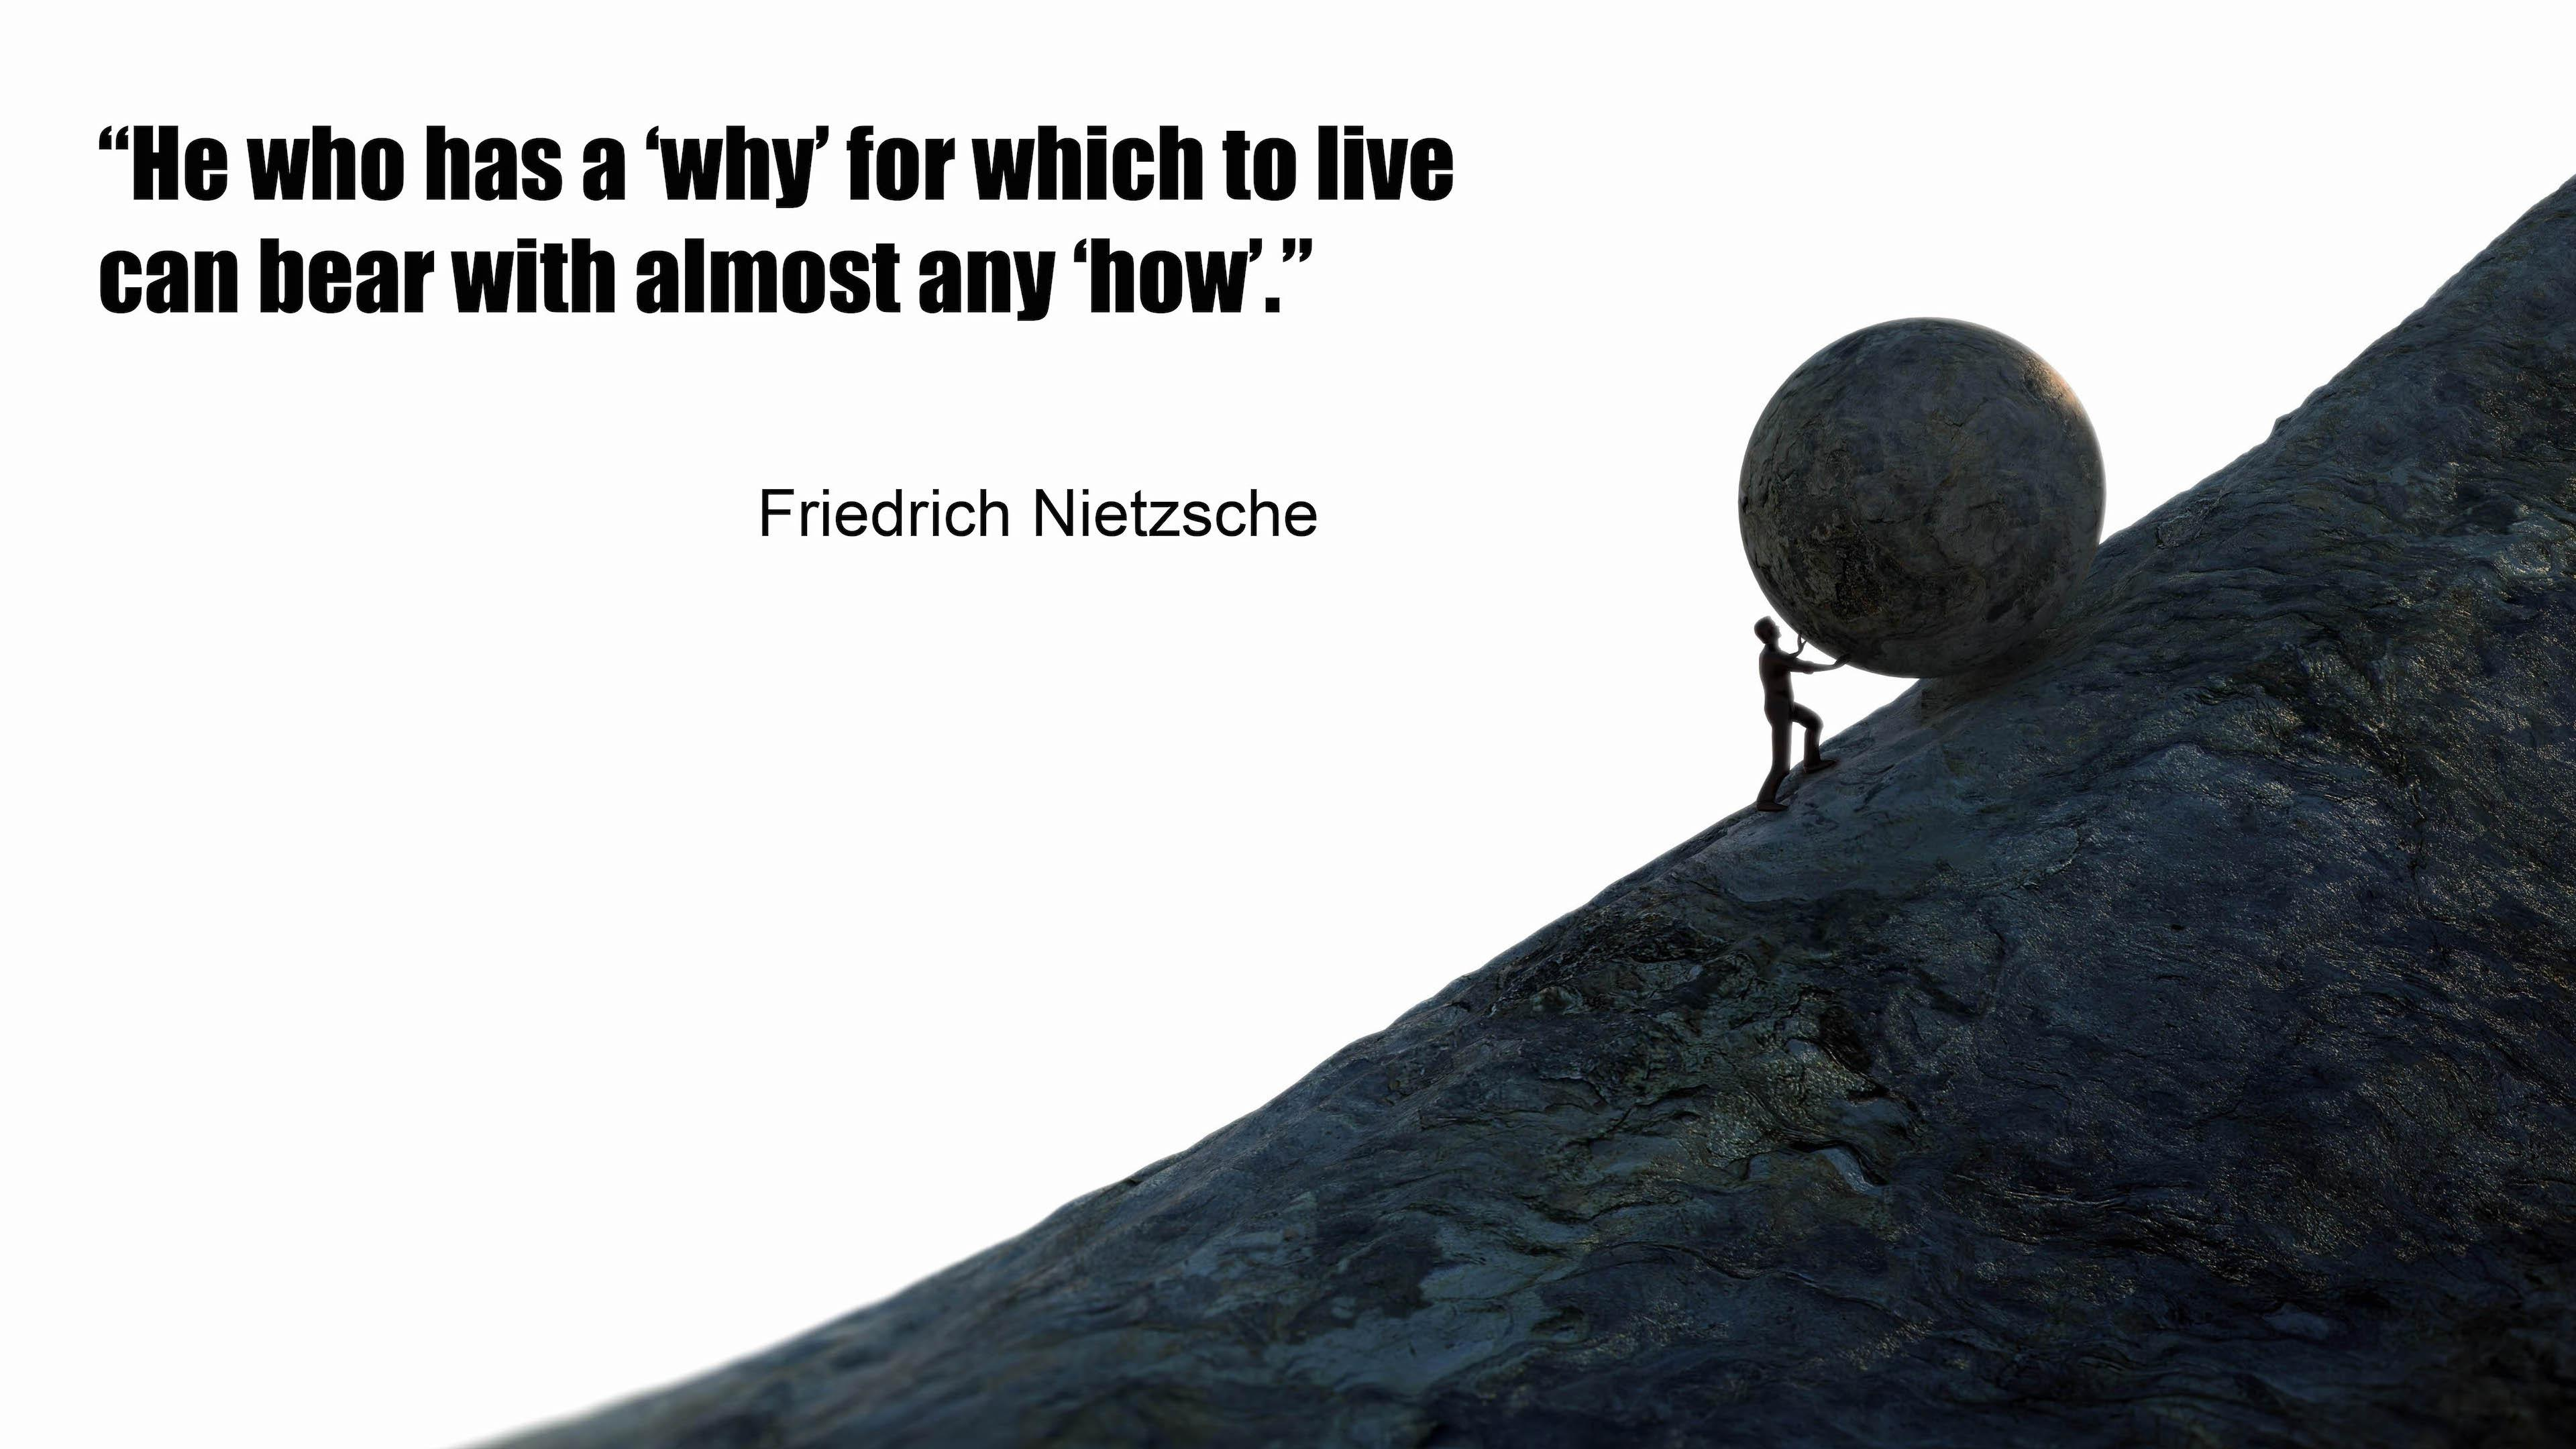 """He who has a 'why' for which to live can bear with almost any 'how'.""— Friedrich Nietzsche-[3840*2160]"